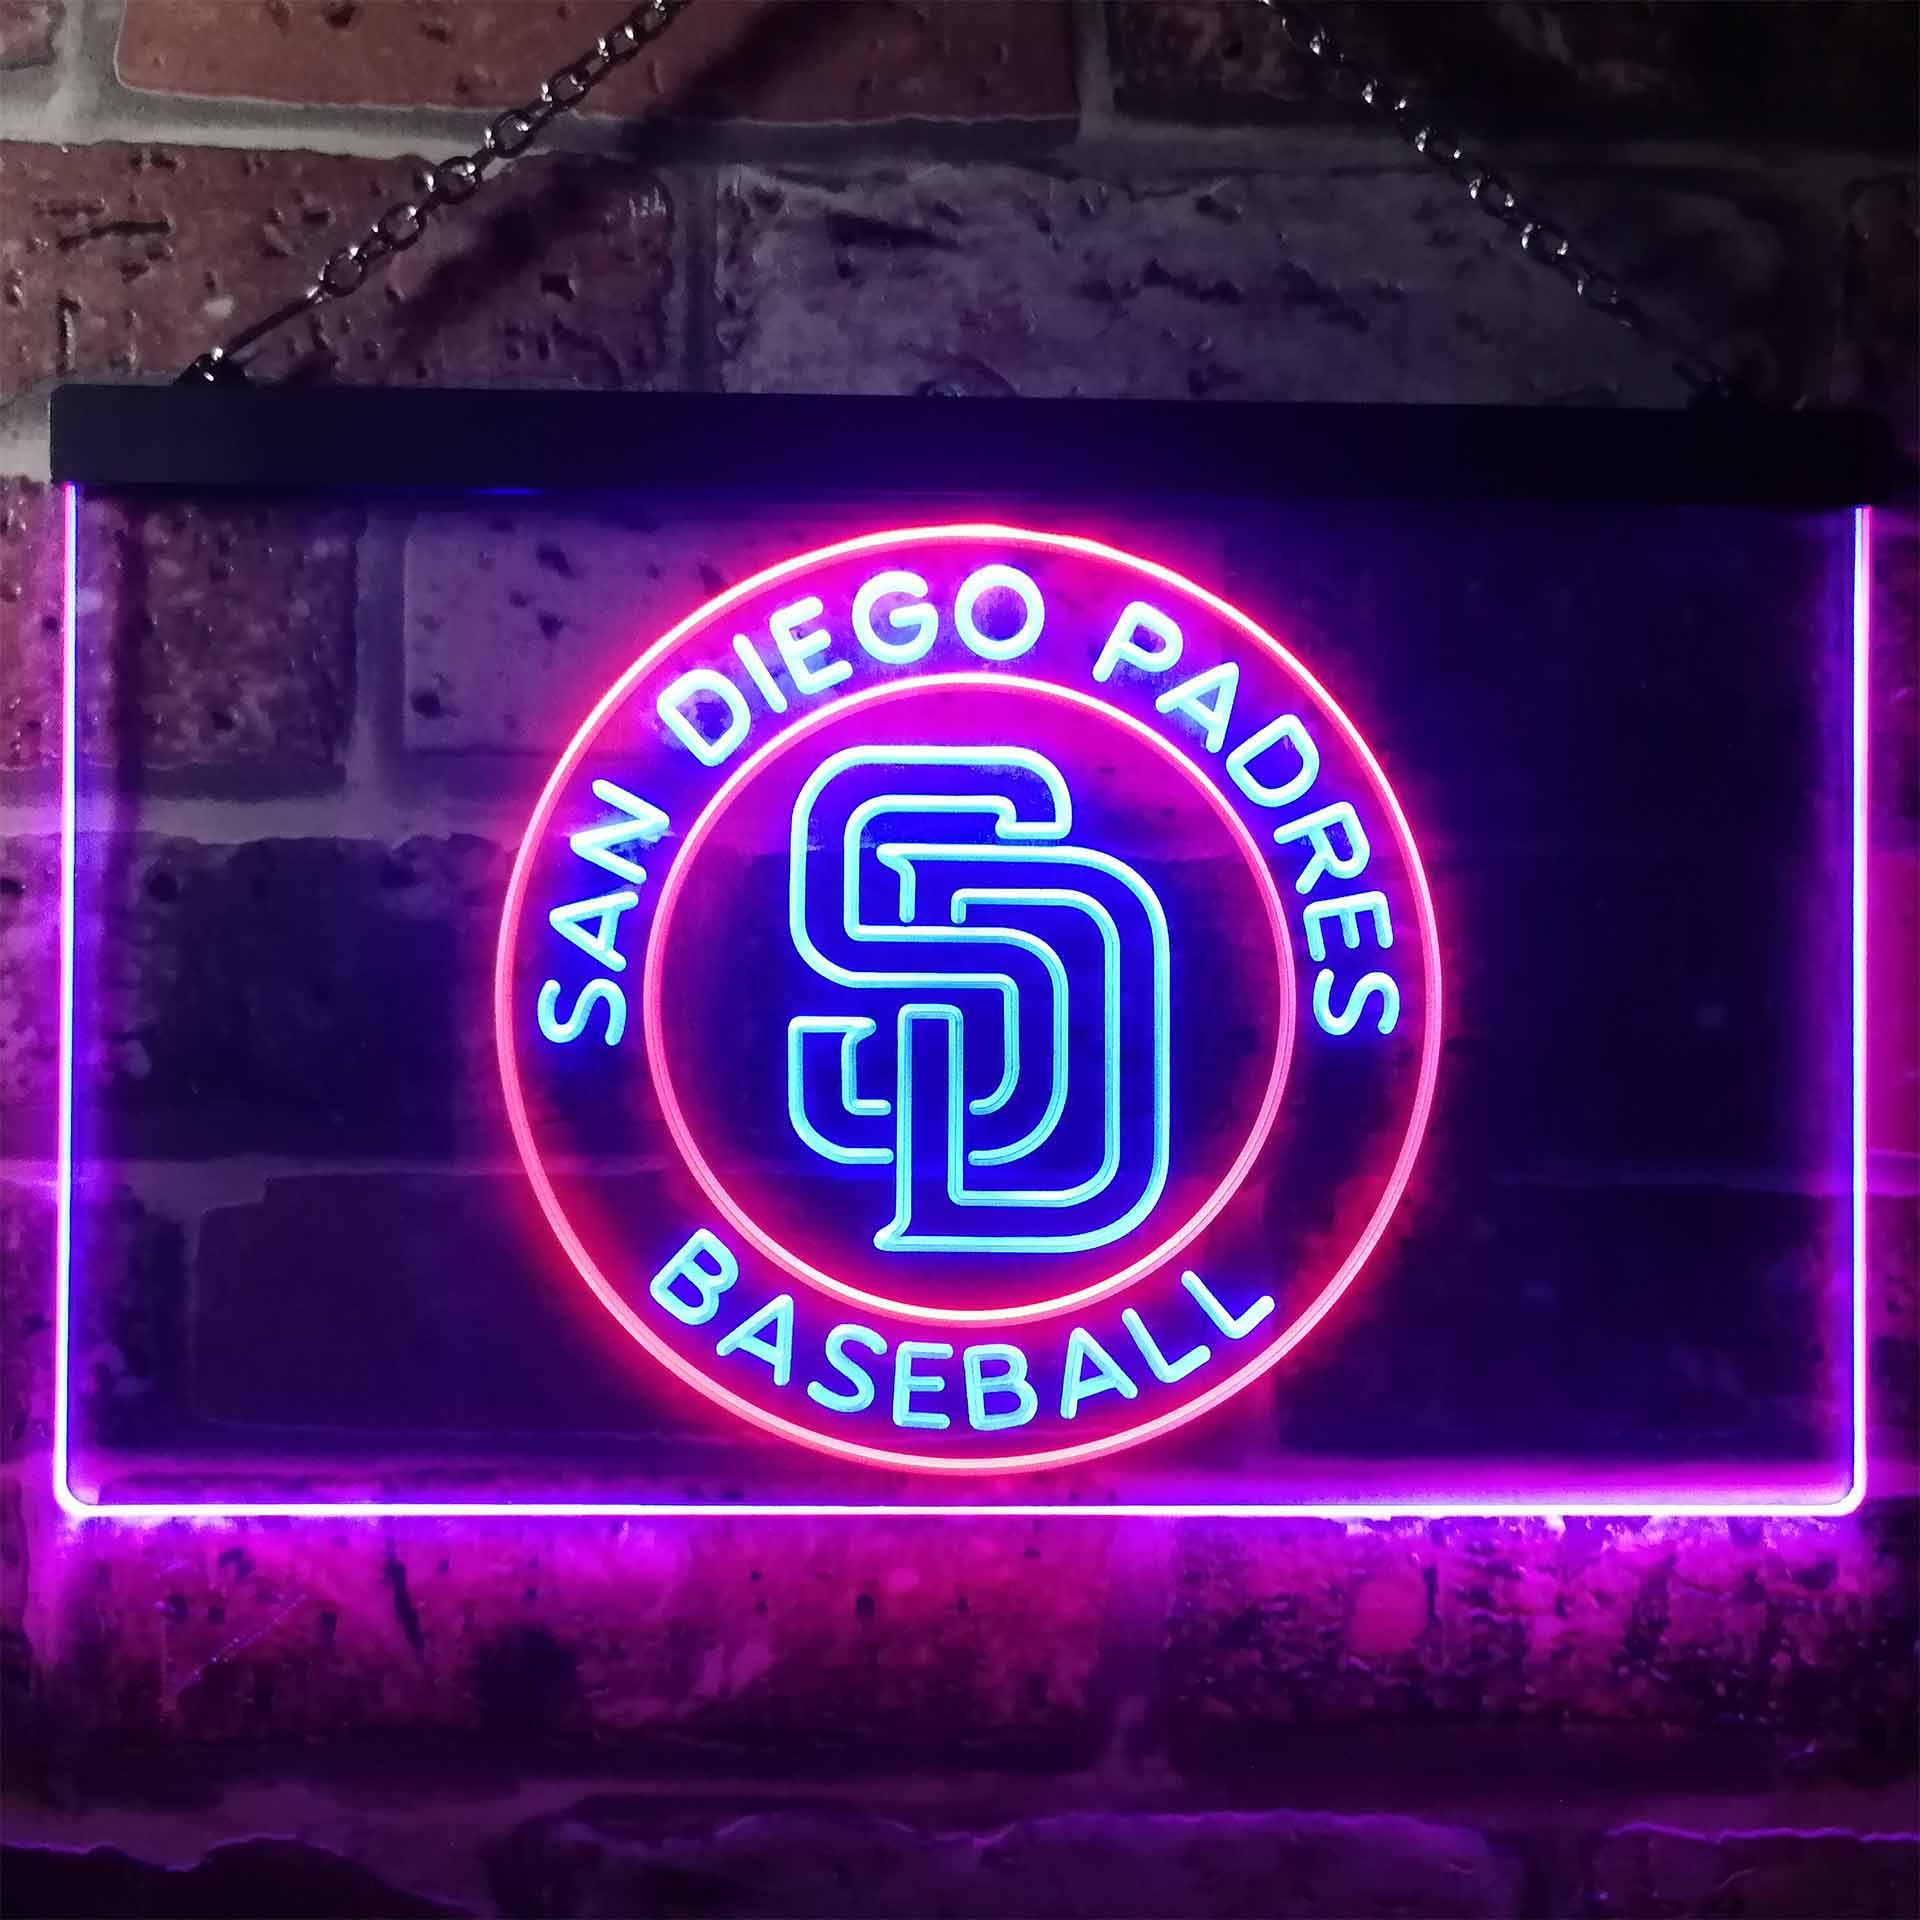 San Diego Padres Baseball Dual Color LED Neon Sign ProLedSign